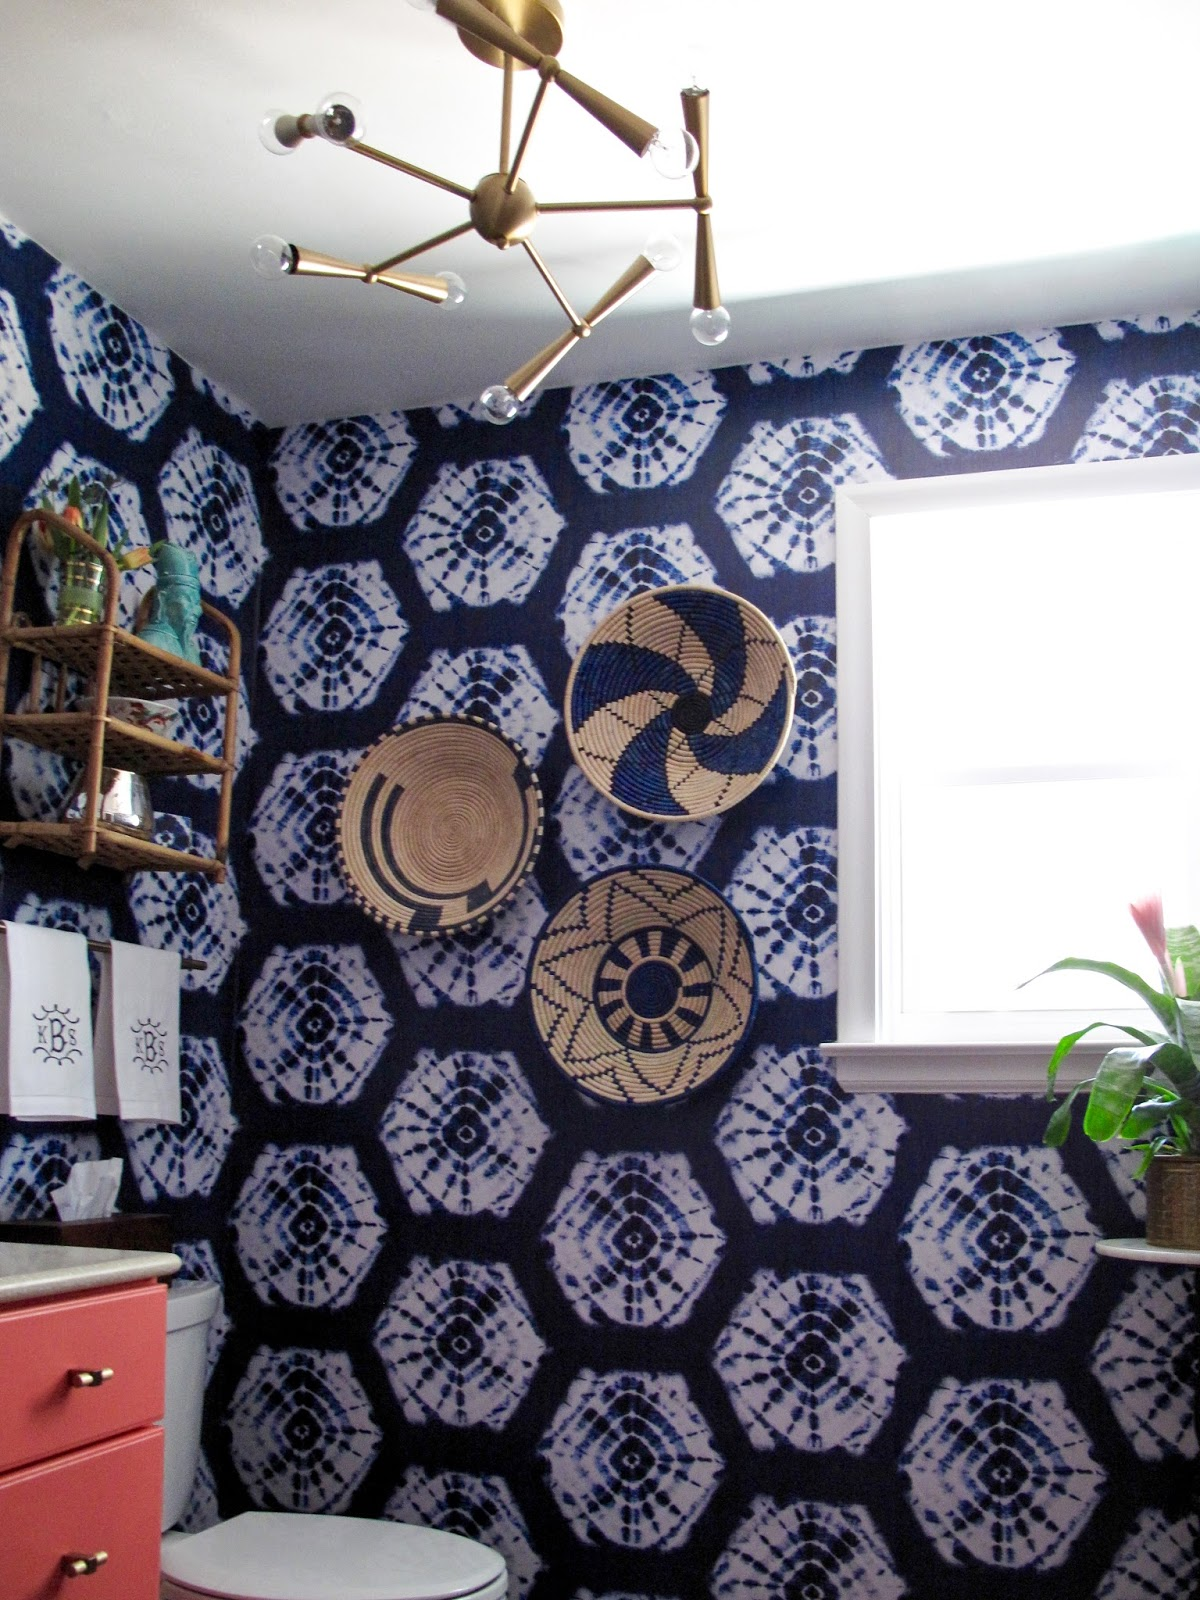 Wallpaper Over Bathroom Tiles. Moving The Light Fixture From The Wall To The Ceiling Was A Game Changer The Original 3 Light Sconce That Hung Over The Mirror